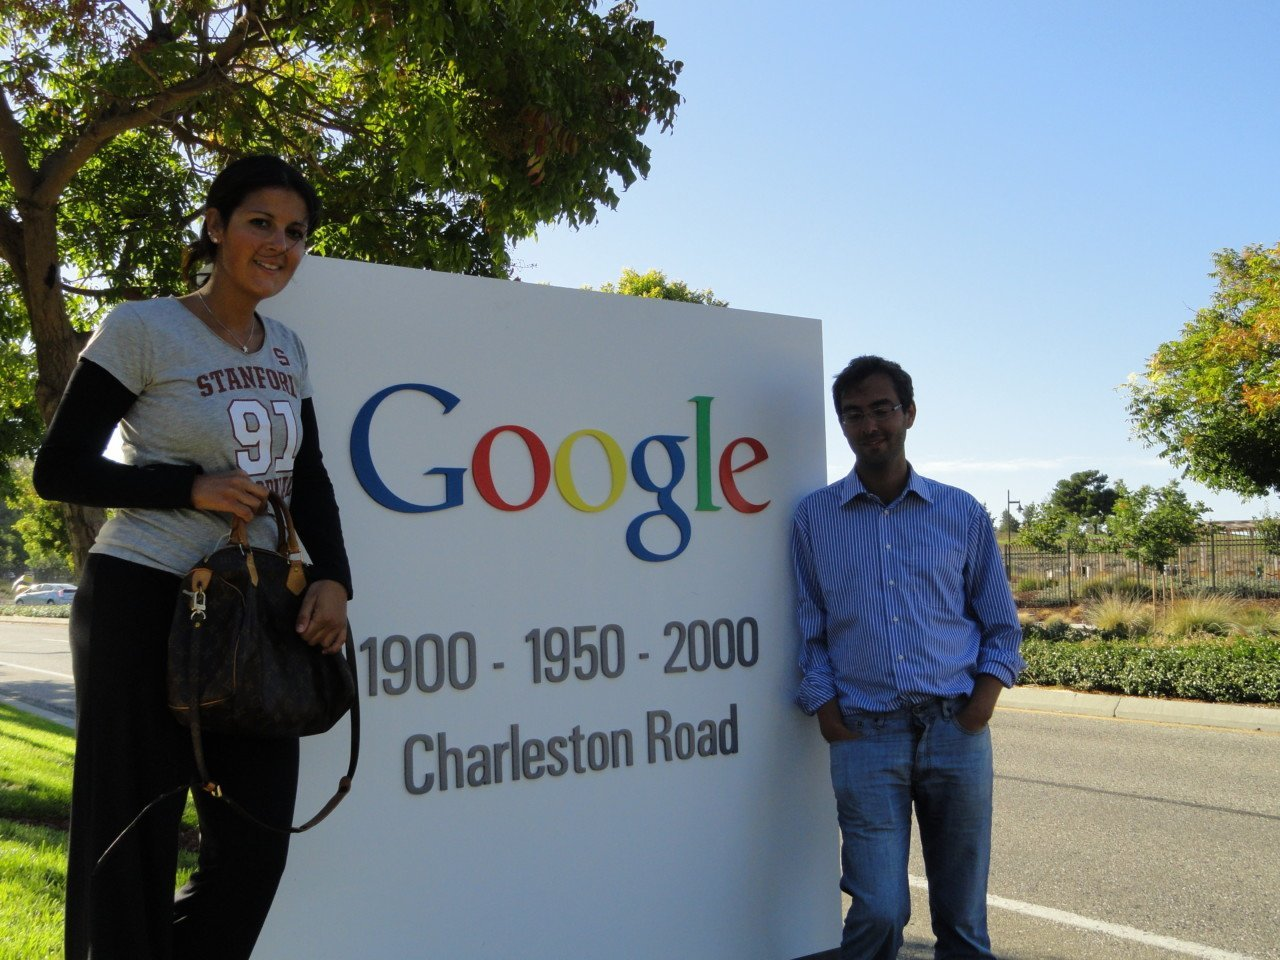 google charleston road, california 3 giorni a san francisco, google site